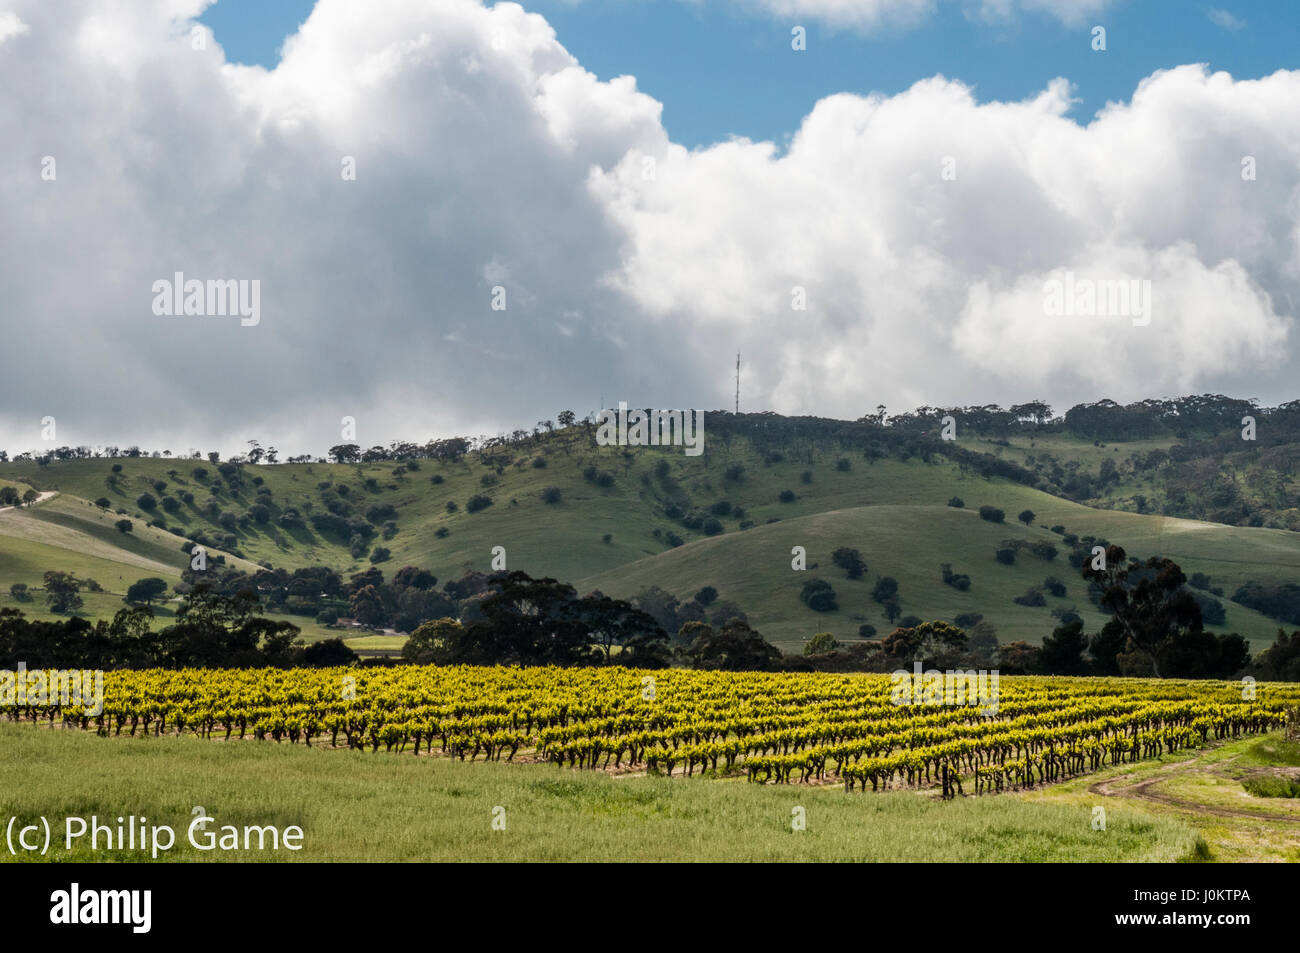 Vineyards of the Barossa Valley, South Australia - Stock Image